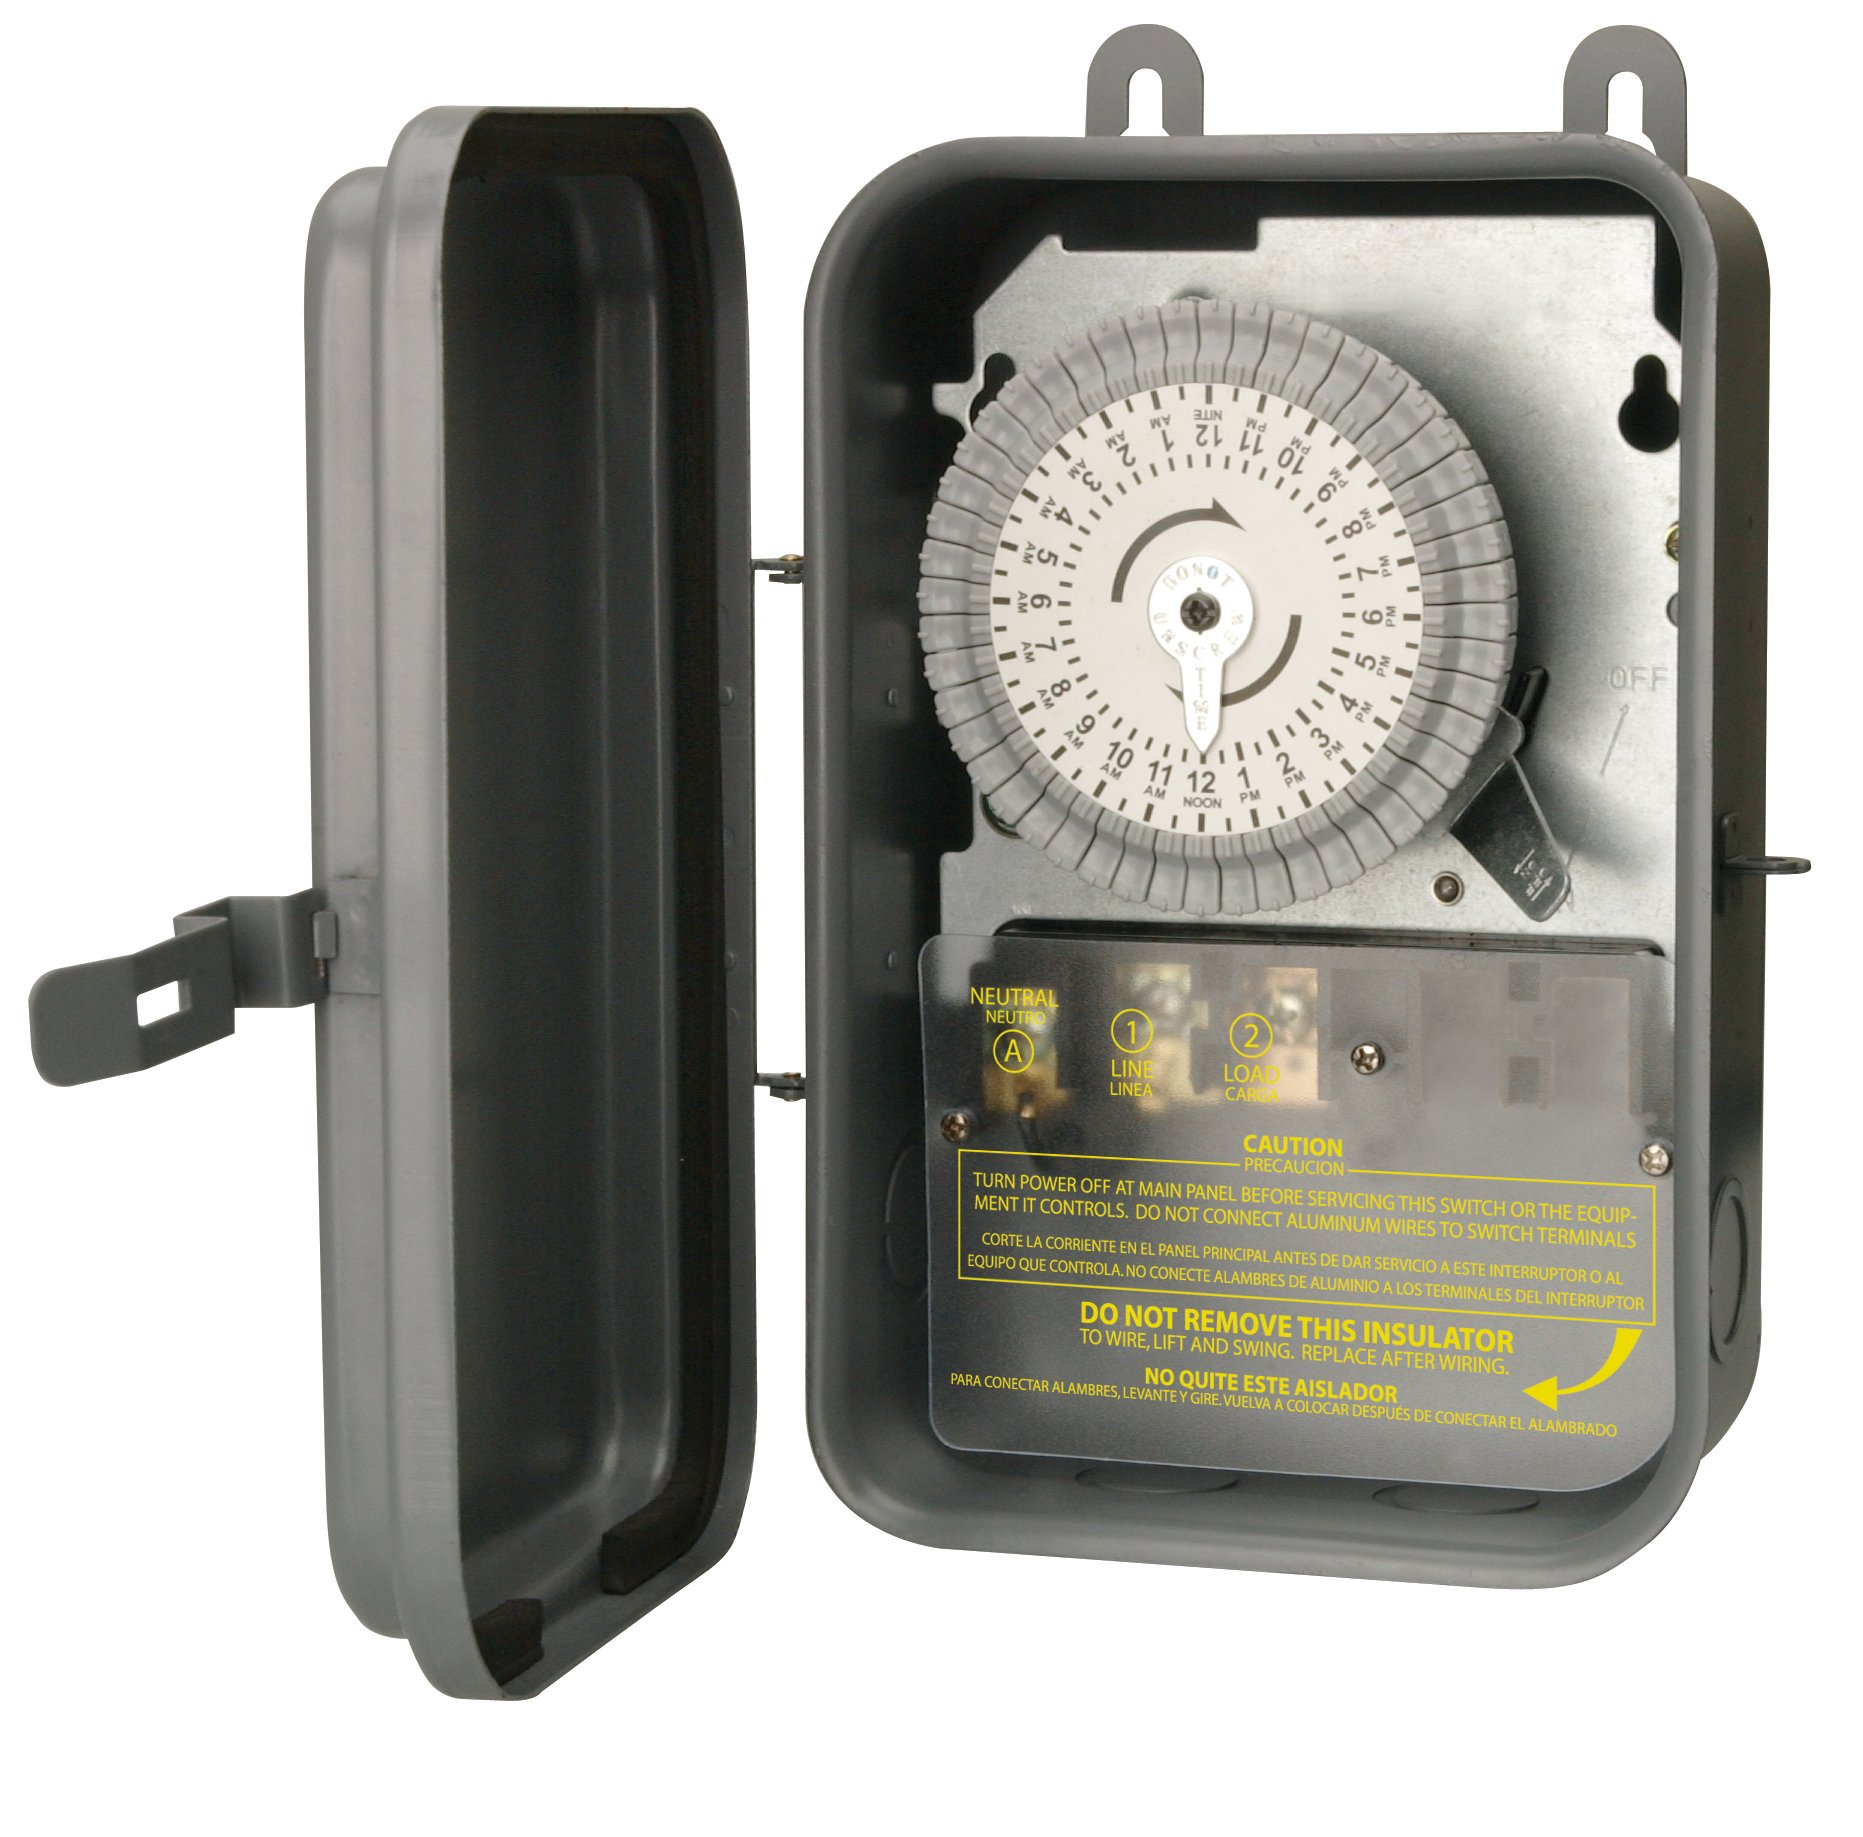 Woods 59101RWD Outdoor 24-Hour Heavy Duty Mechanical Time Switch, 120V/40 SPST by Woods